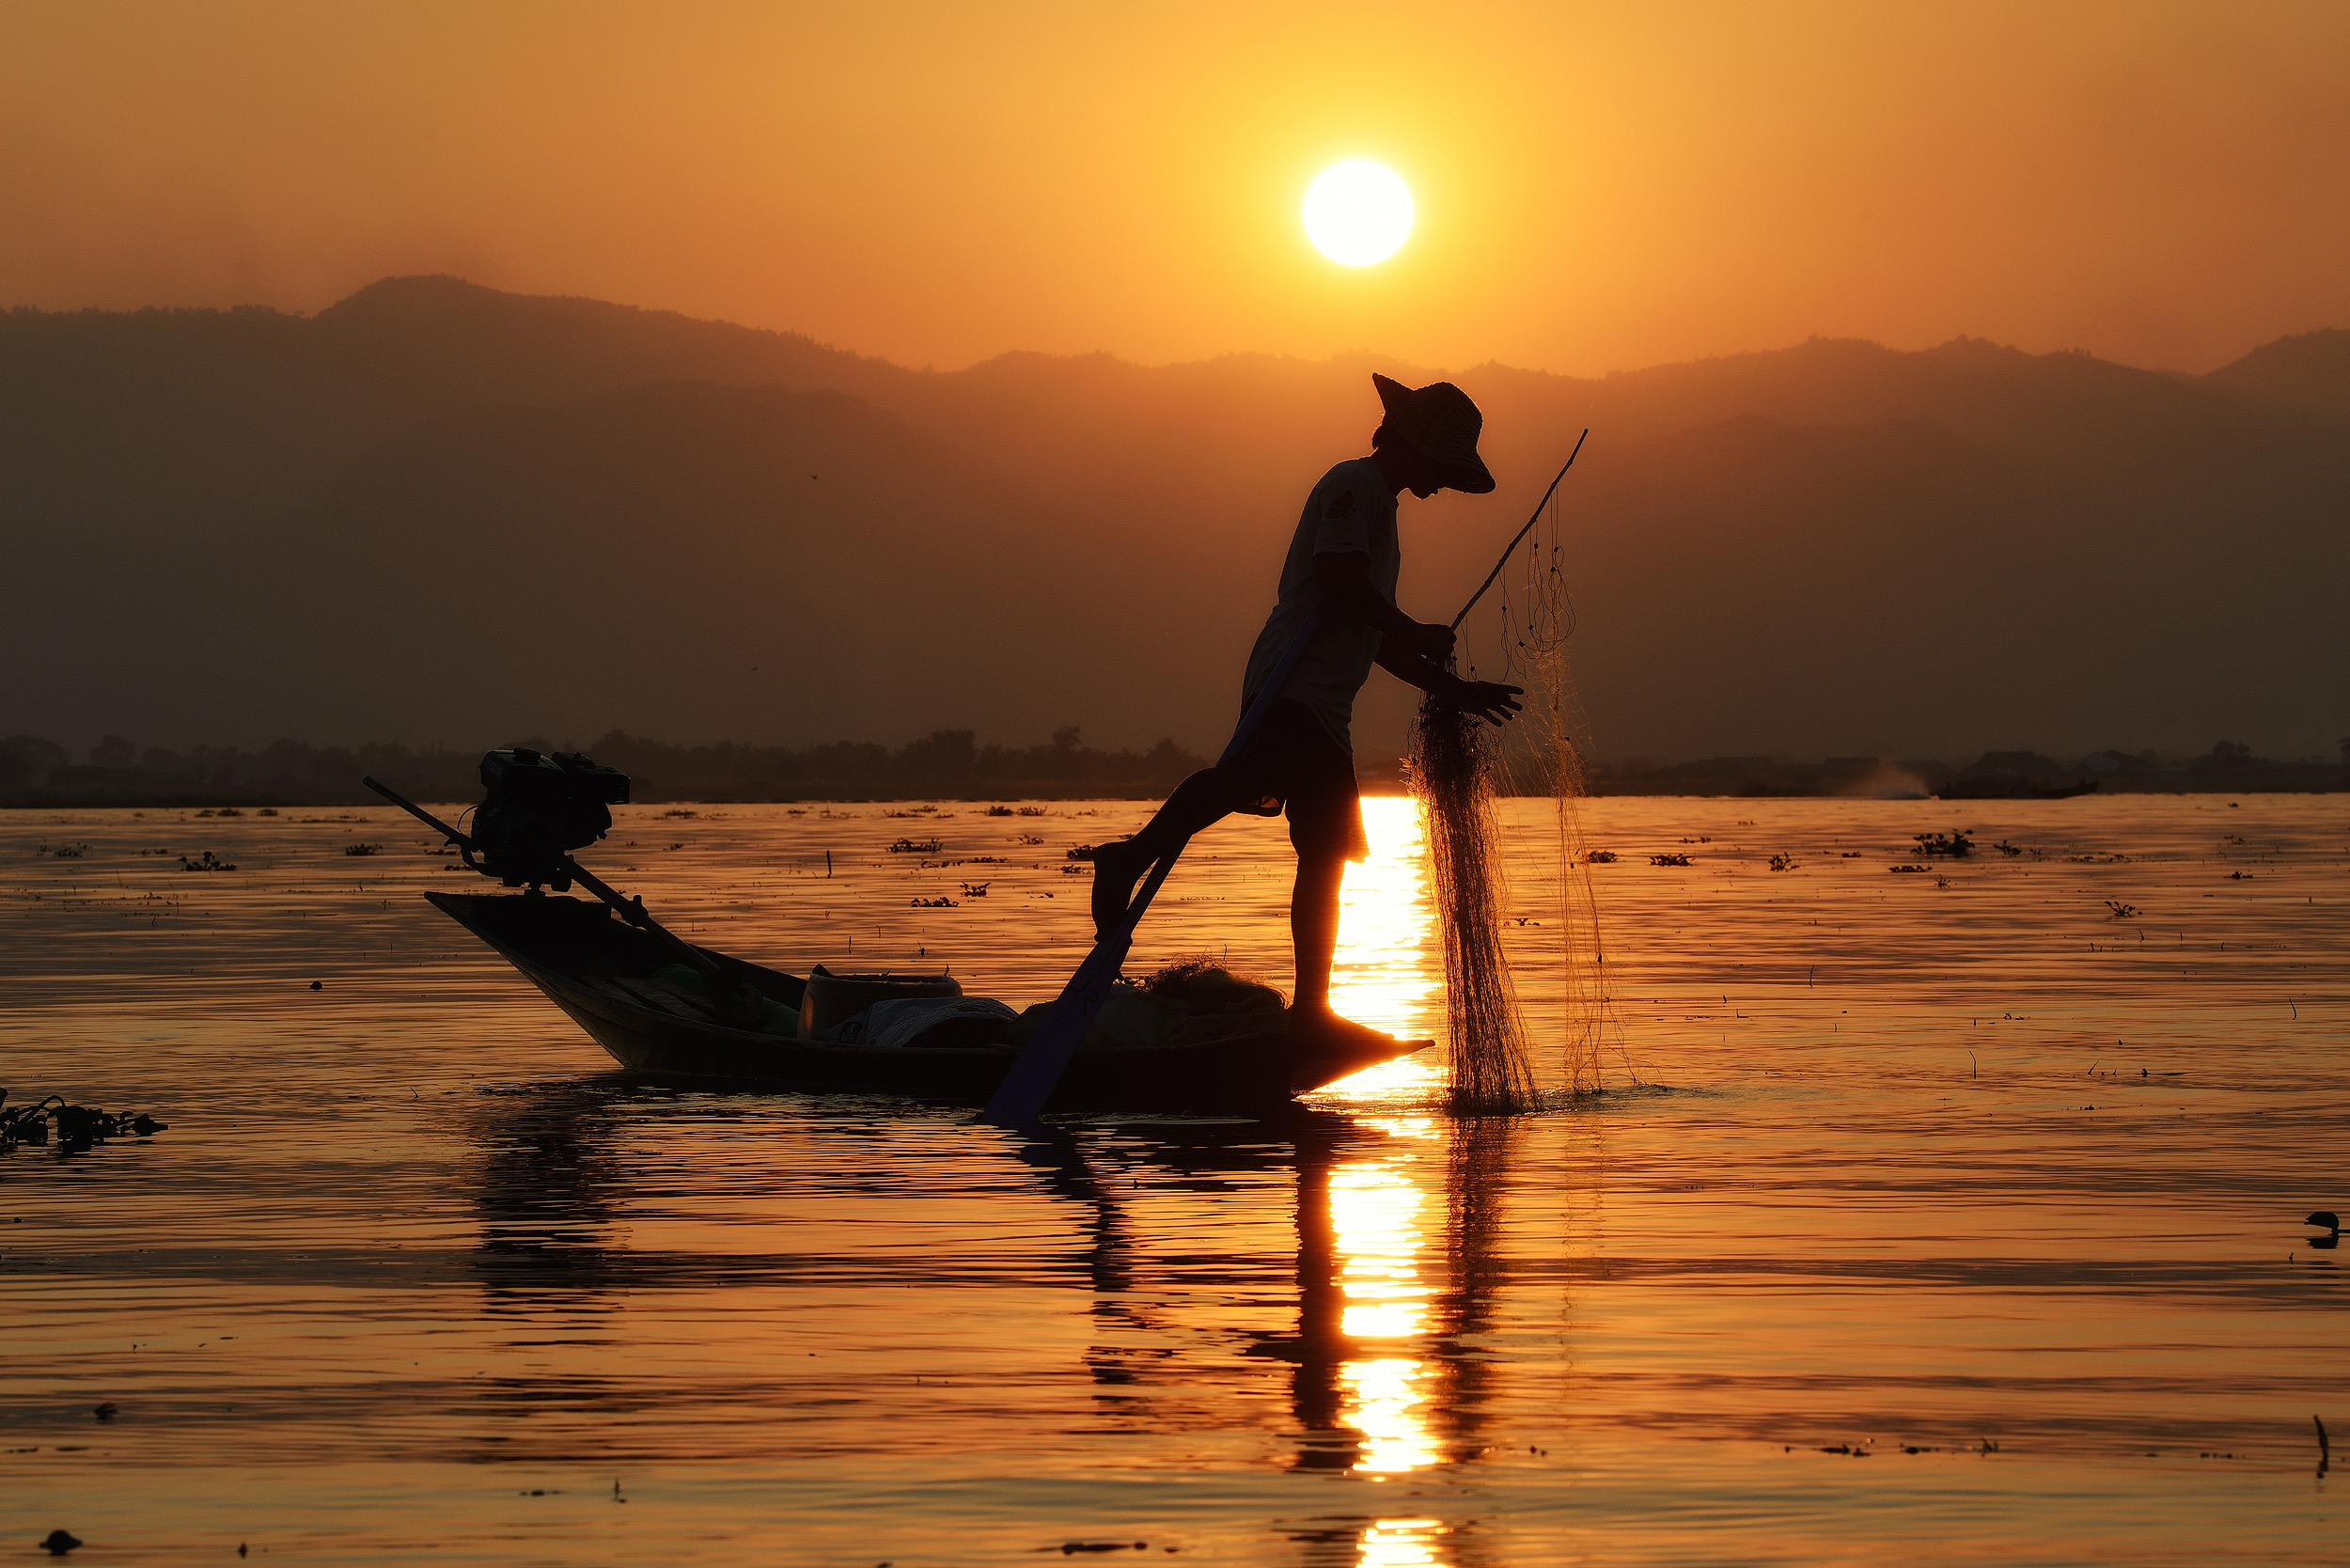 Last light at Inle   A fishermen tends his nets as the sun sets at Lake Inle.